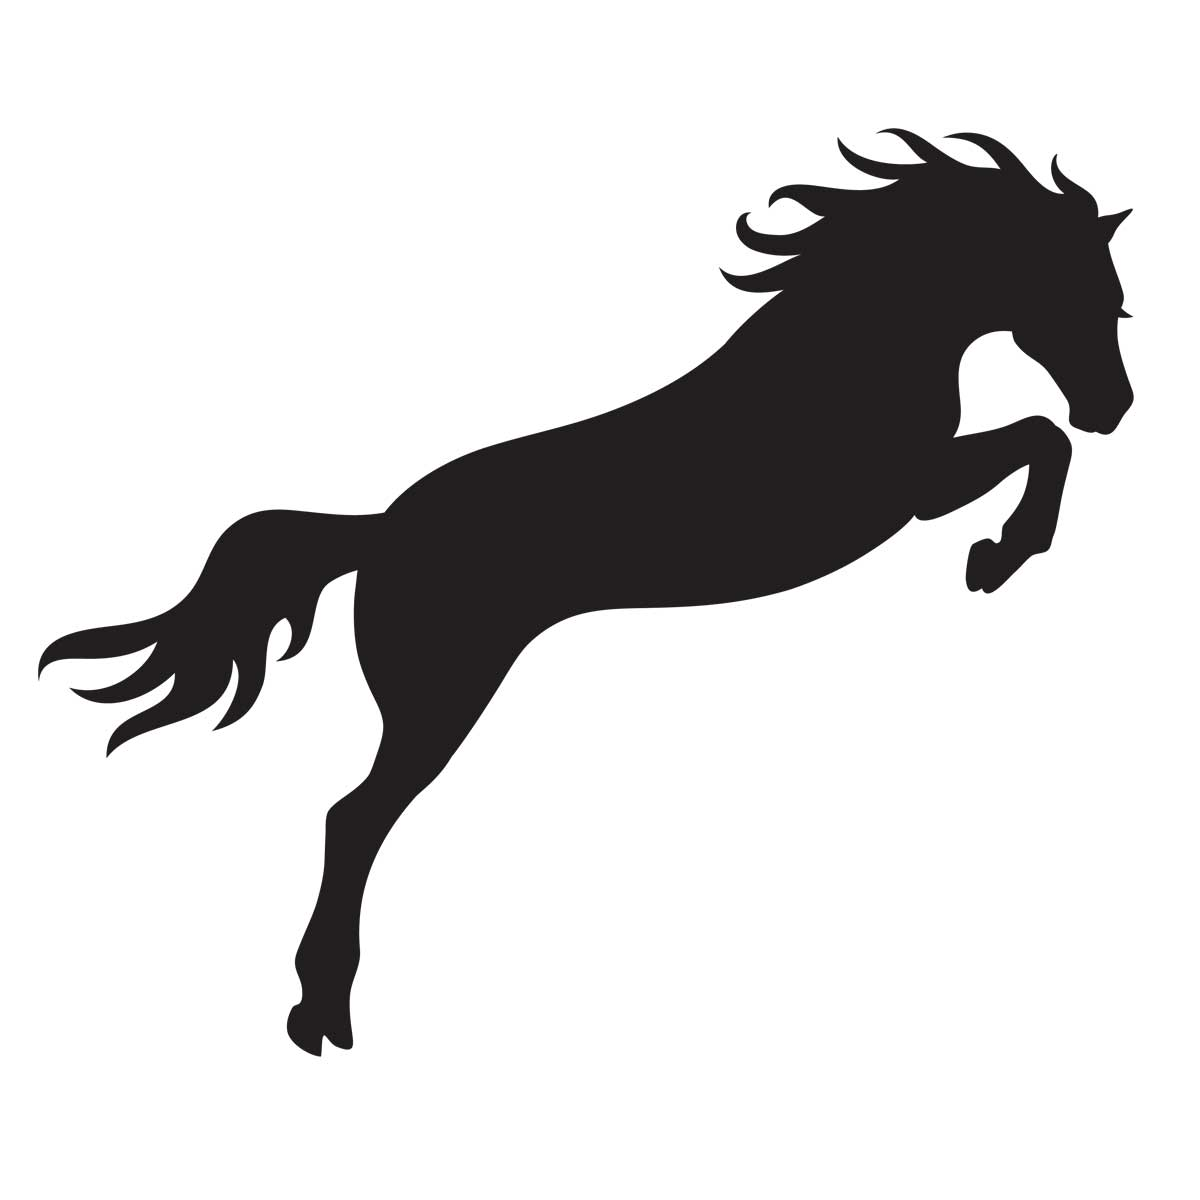 picture relating to Horse Stencil Printable titled Leaping Horse Stencil for Glitter Tattoos for Horses